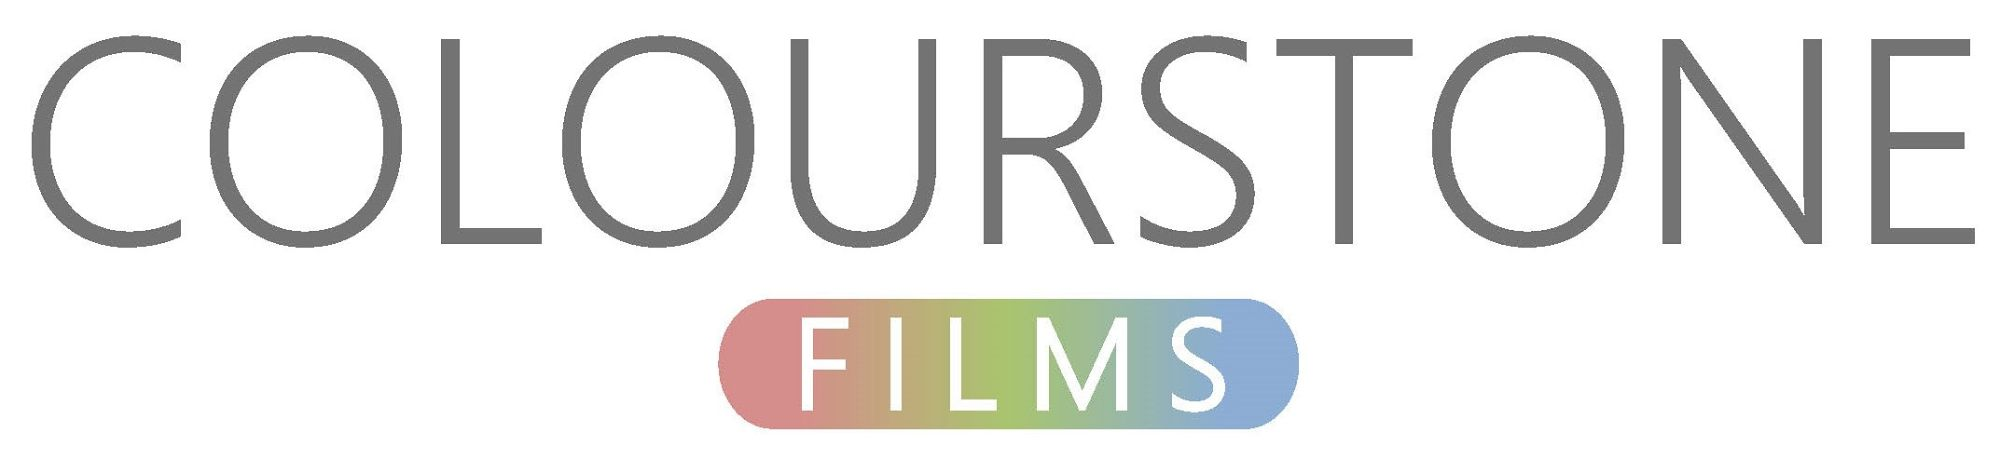 COLOURSTONE FILMS